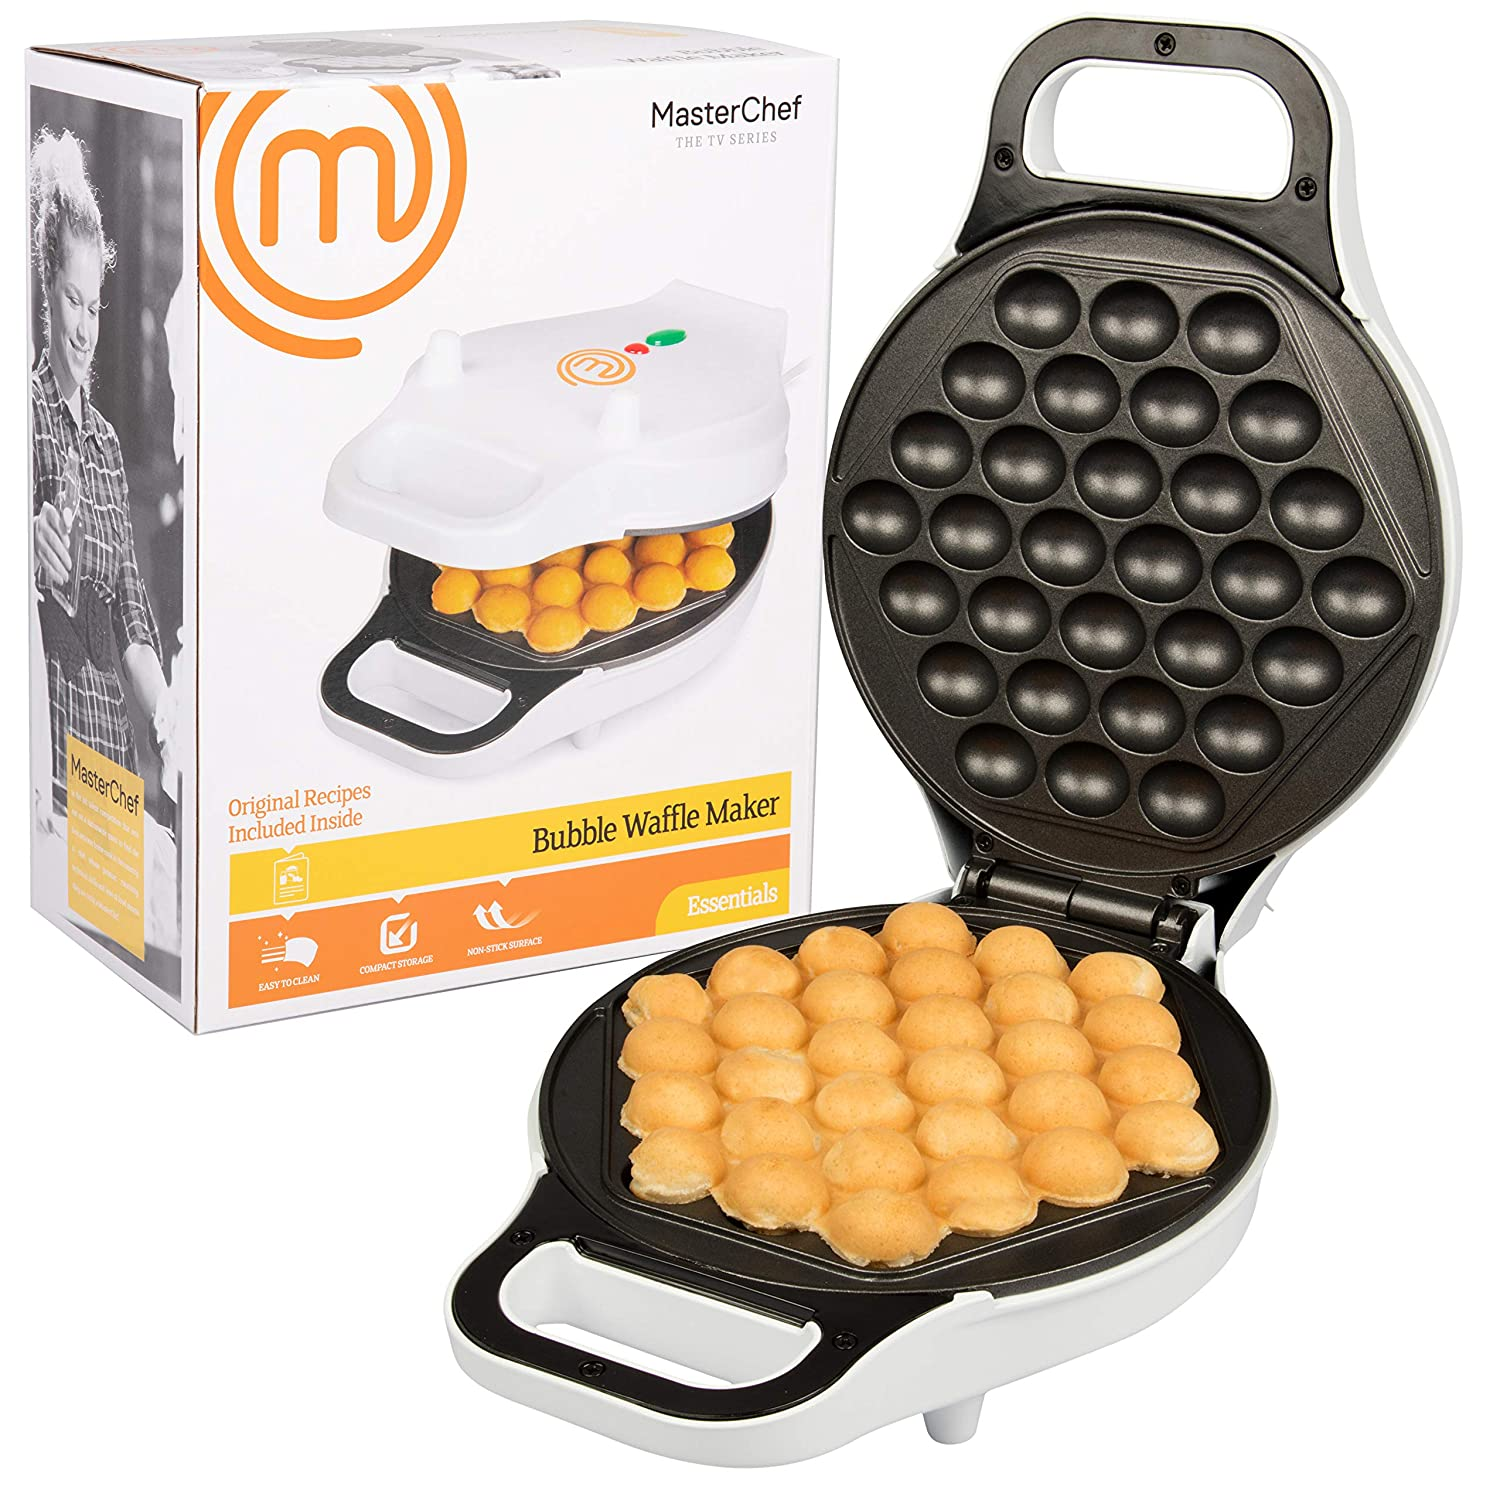 MasterChef Bubble Waffle Maker- Electric Non stick Hong Kong Egg Waffler Iron Griddle- Ready in under 5 Minutes MCF-BWW-696